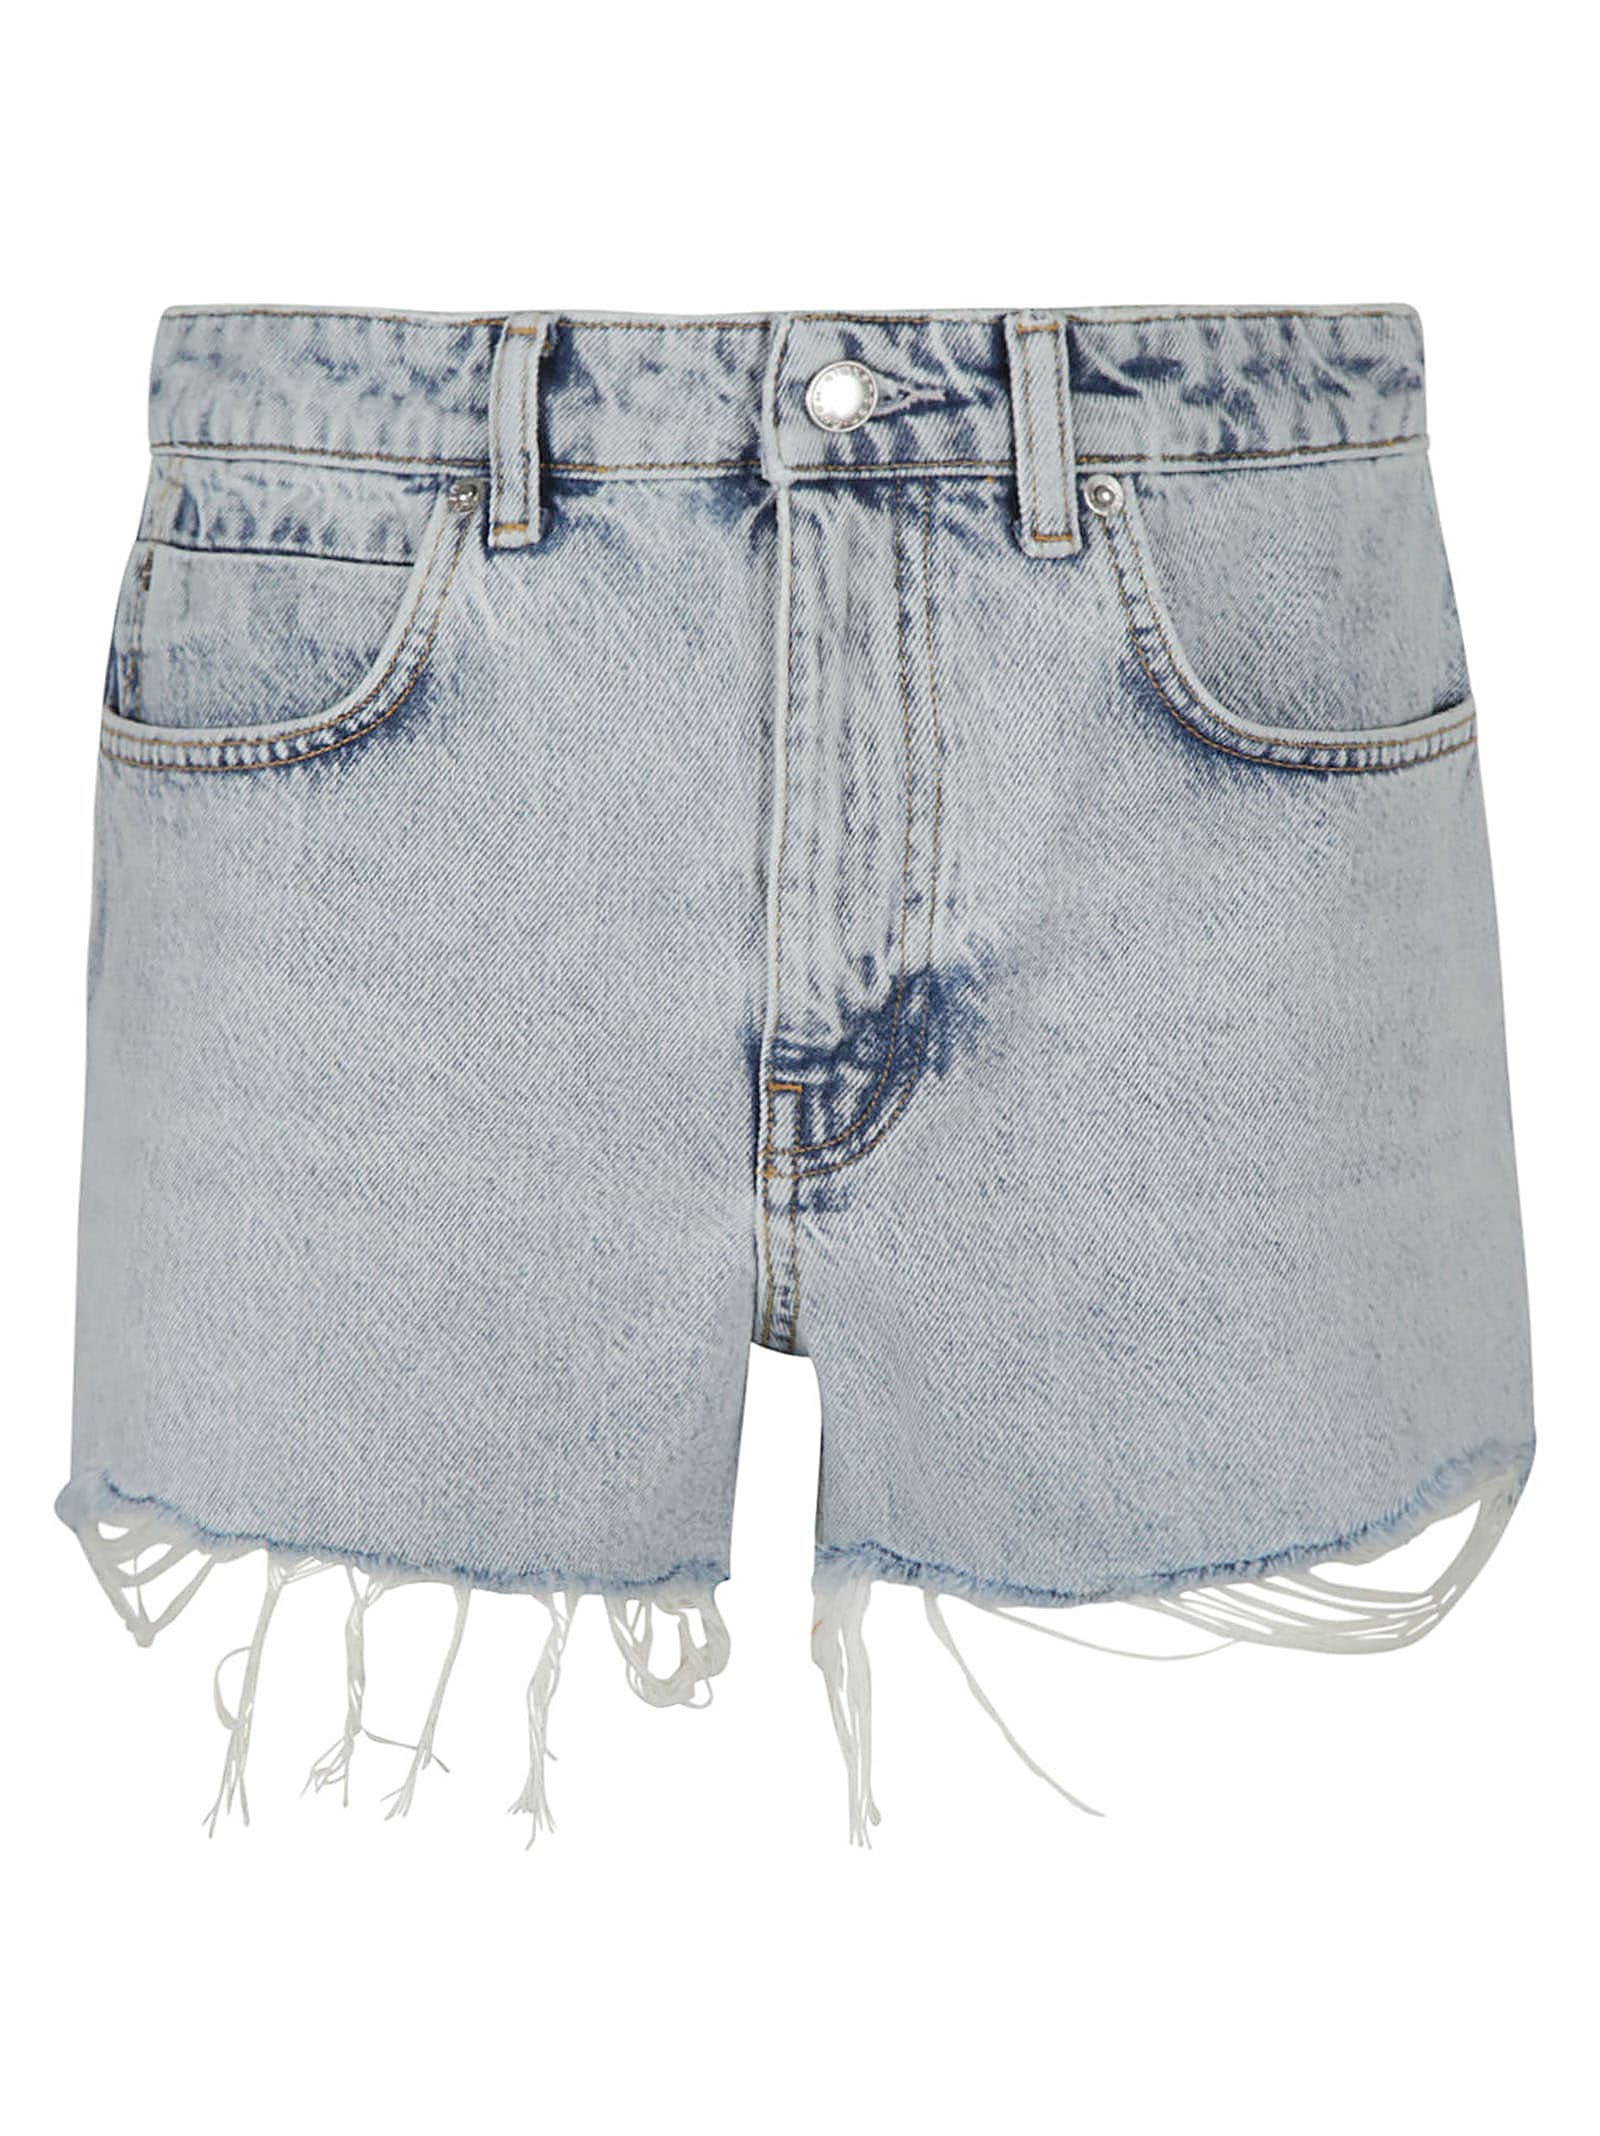 Alexander Wang High Waist Shorts